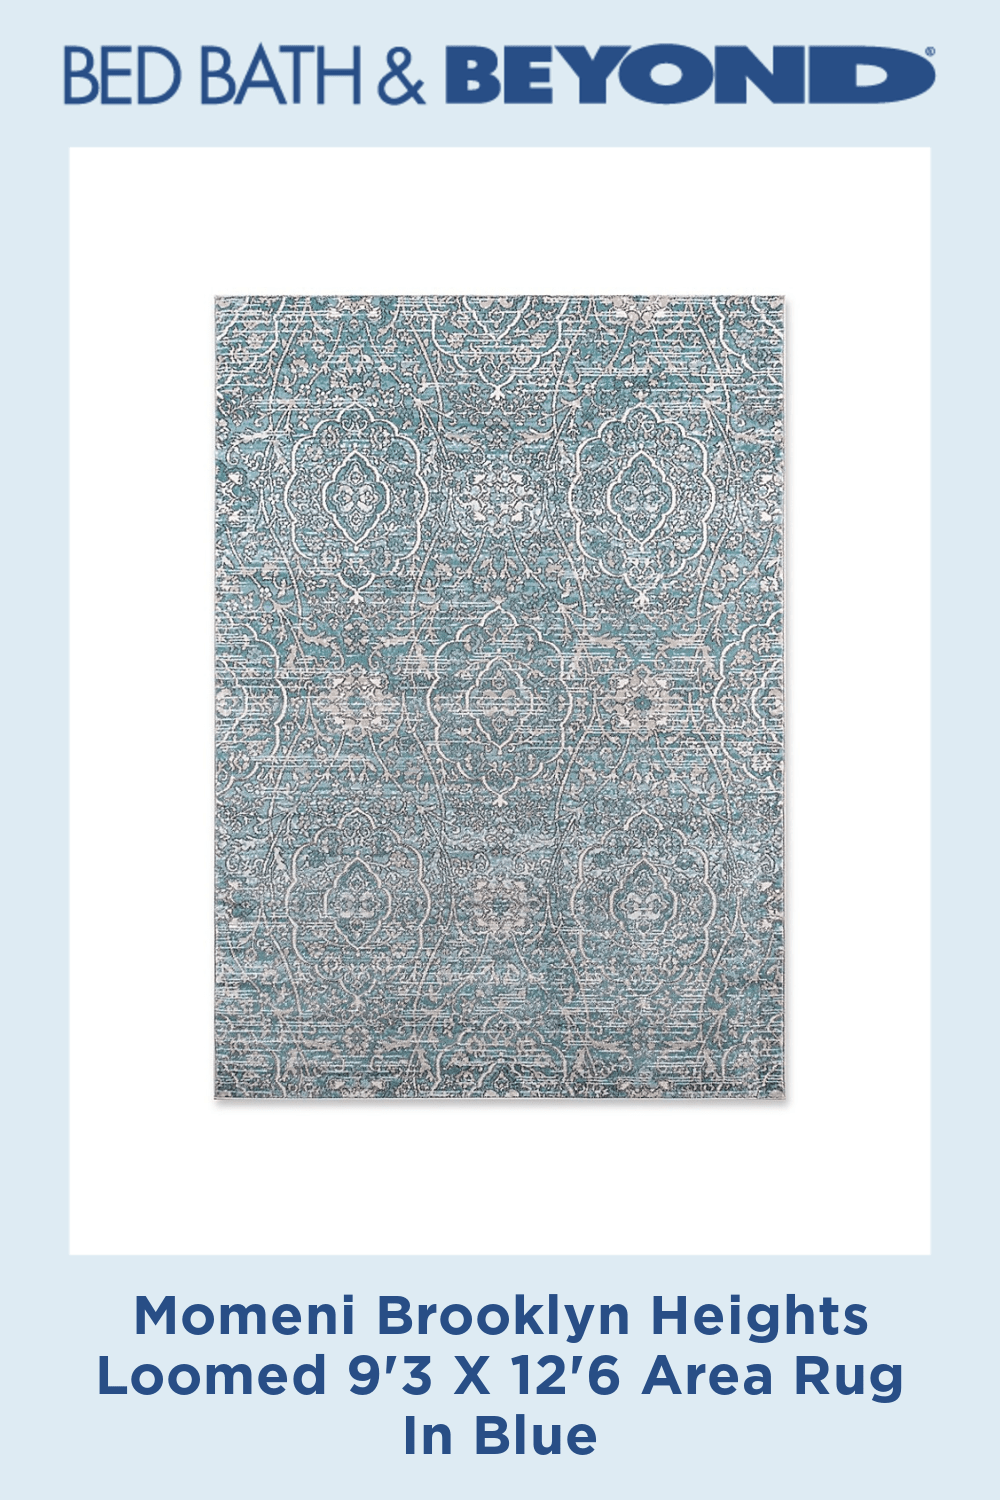 Momeni Brooklyn Heights Loomed 9'3 X 12'6 Area Rug In Blue